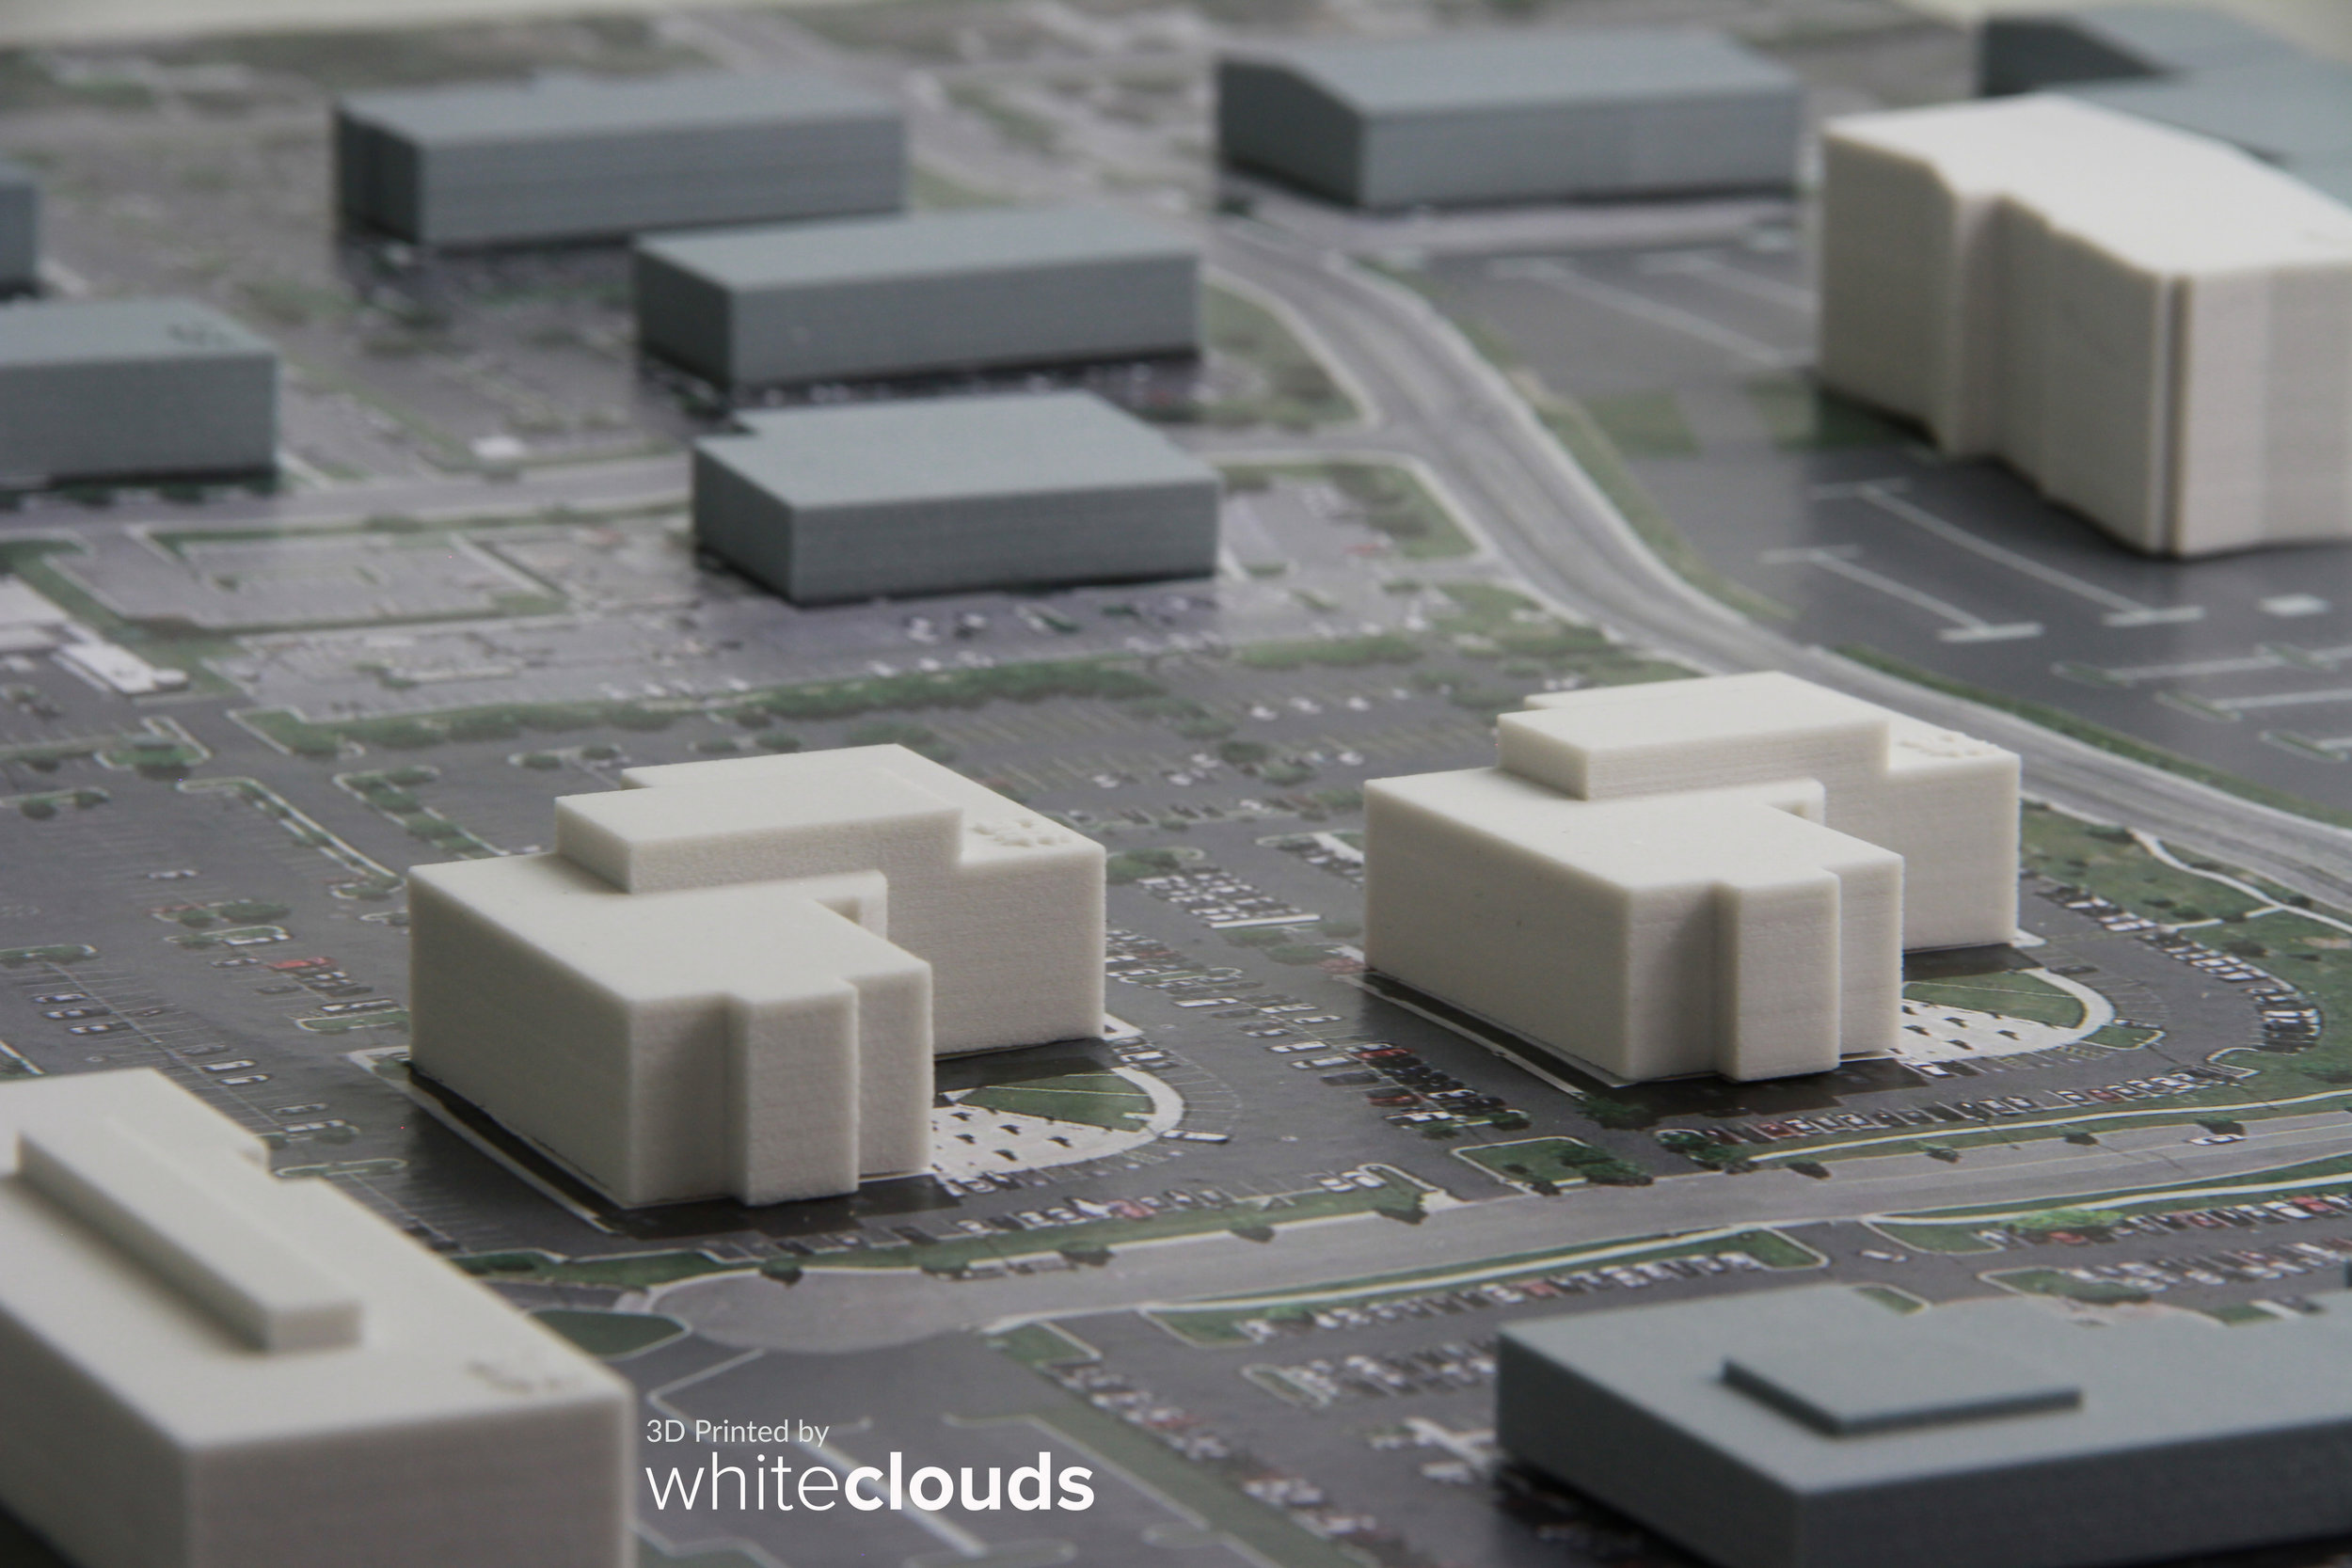 3D-Printed-WhiteClouds-Business-District-Archetectural-Canopy-(Topography)-3.JPG